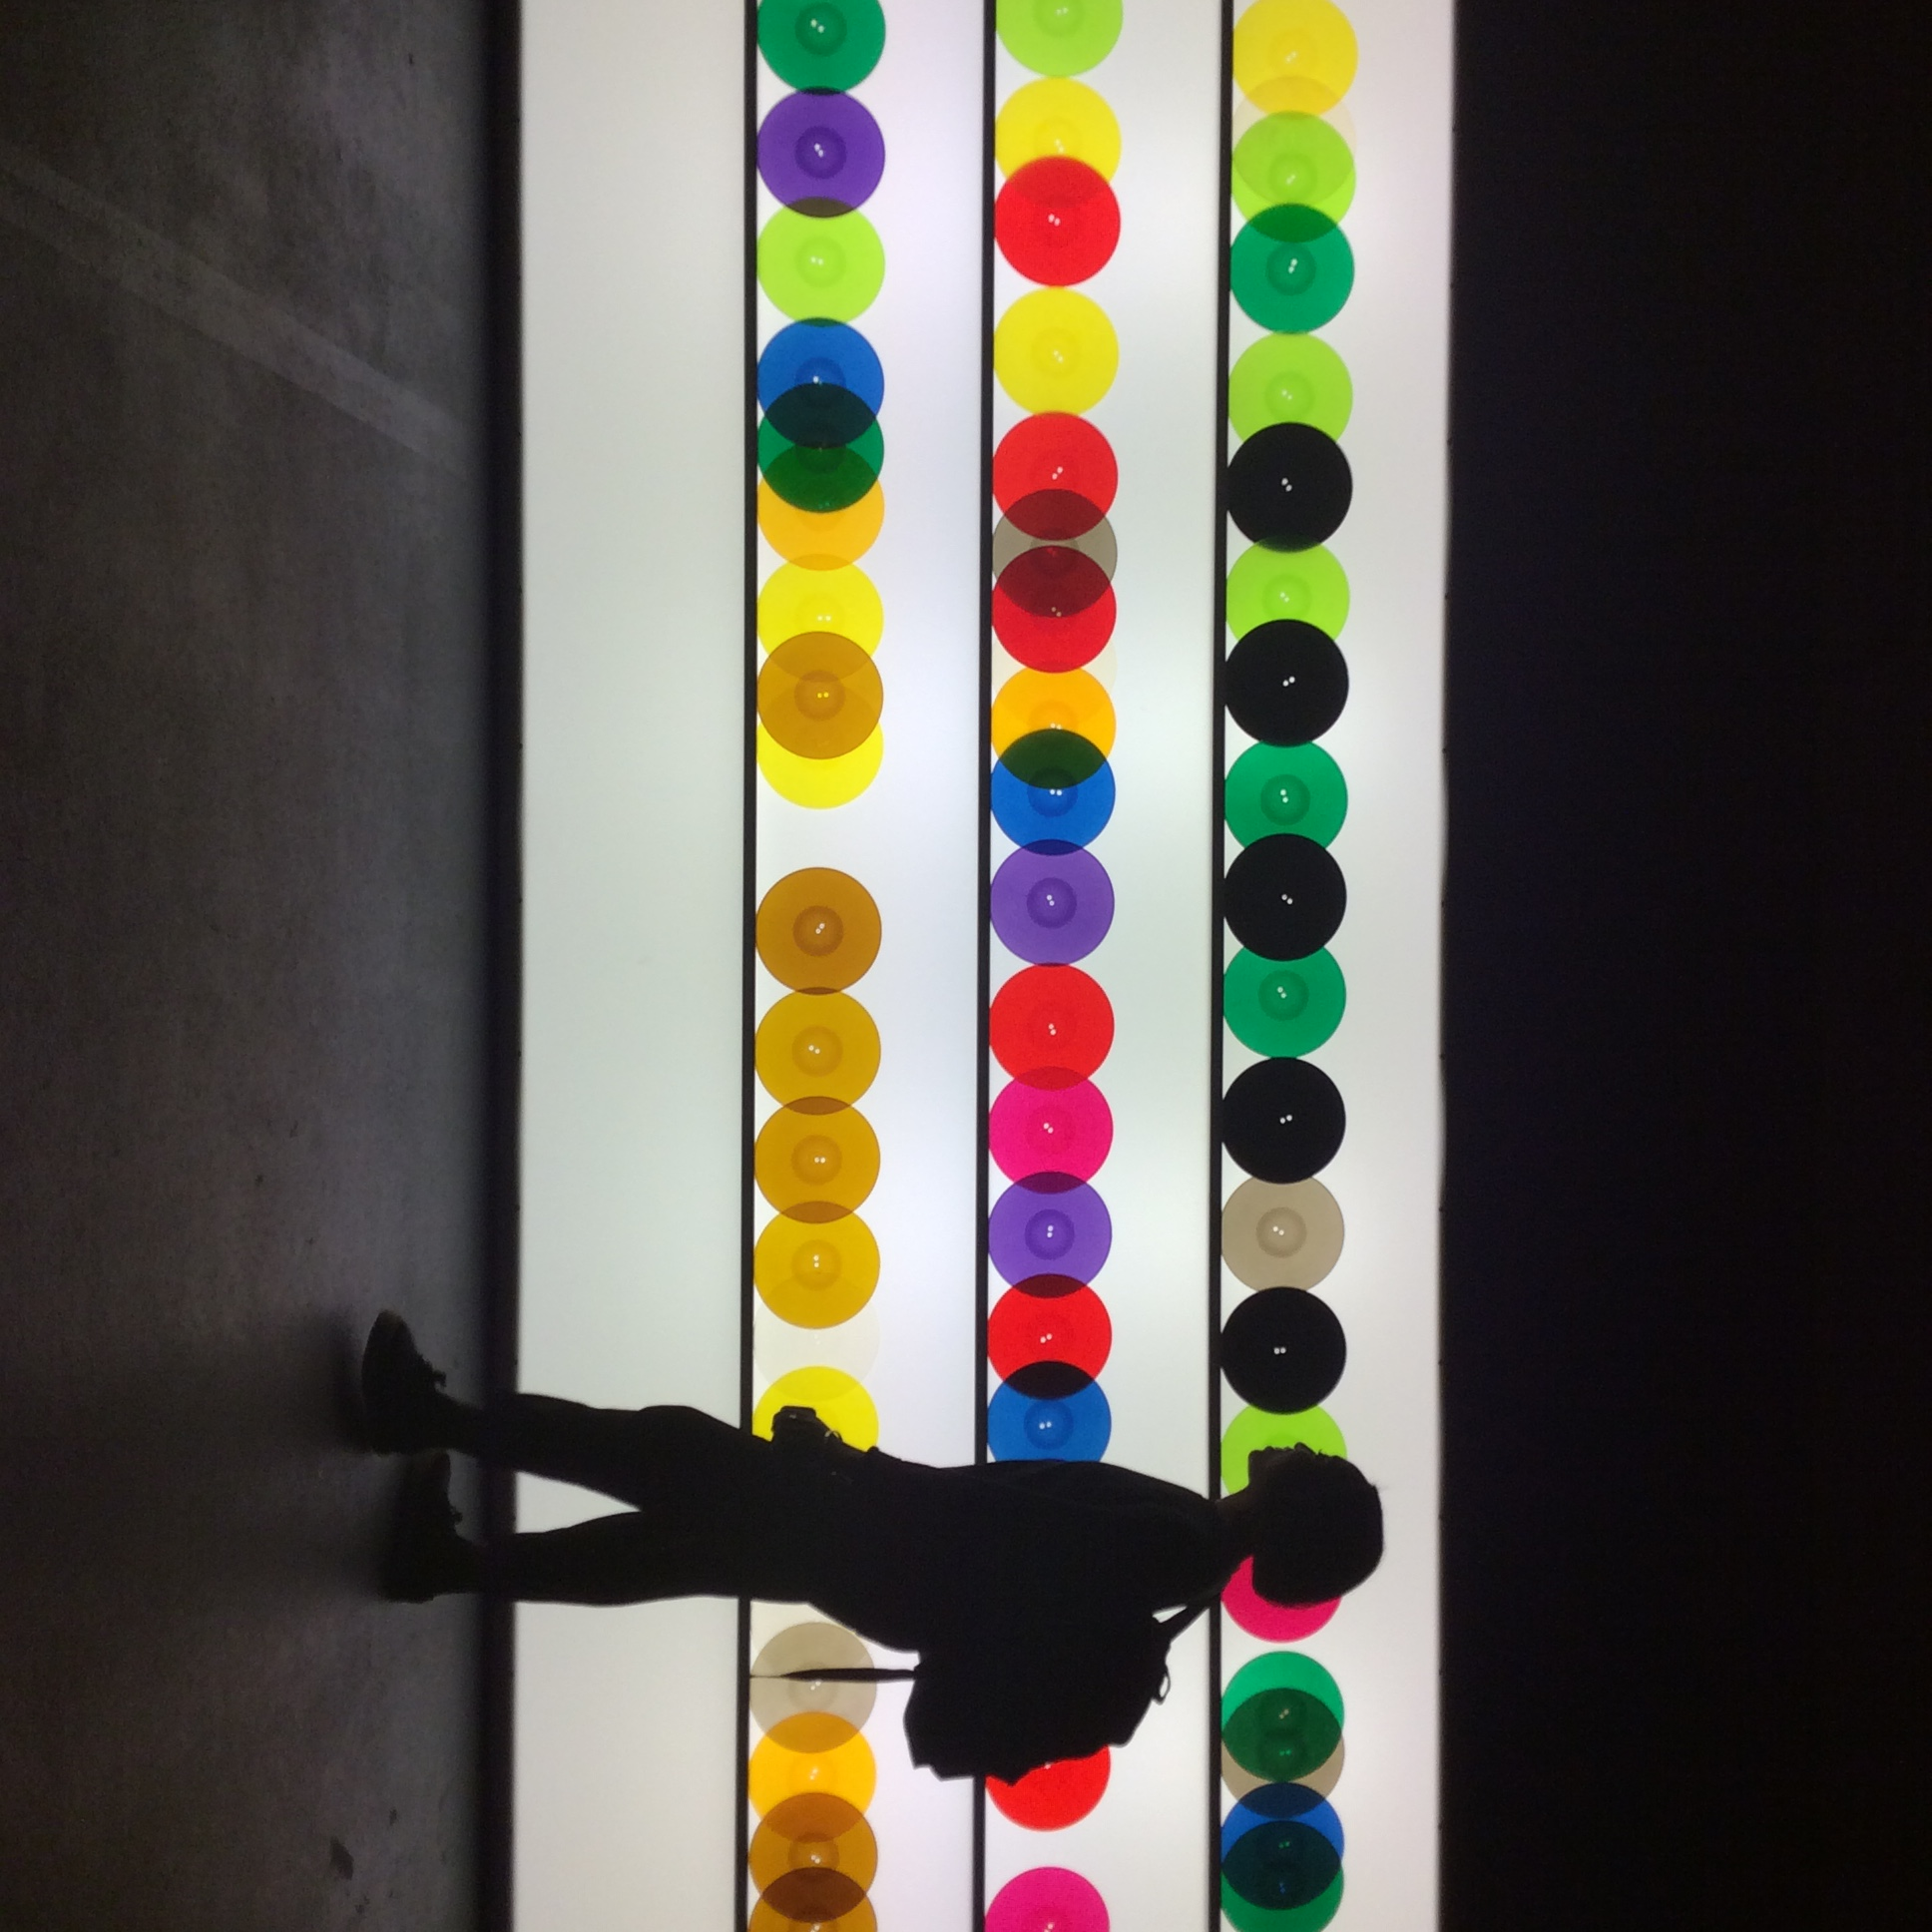 CREDIT: Image taken by Kate F at the  Carsten NicolaiX Vinyl Factory -Brewer Car Park